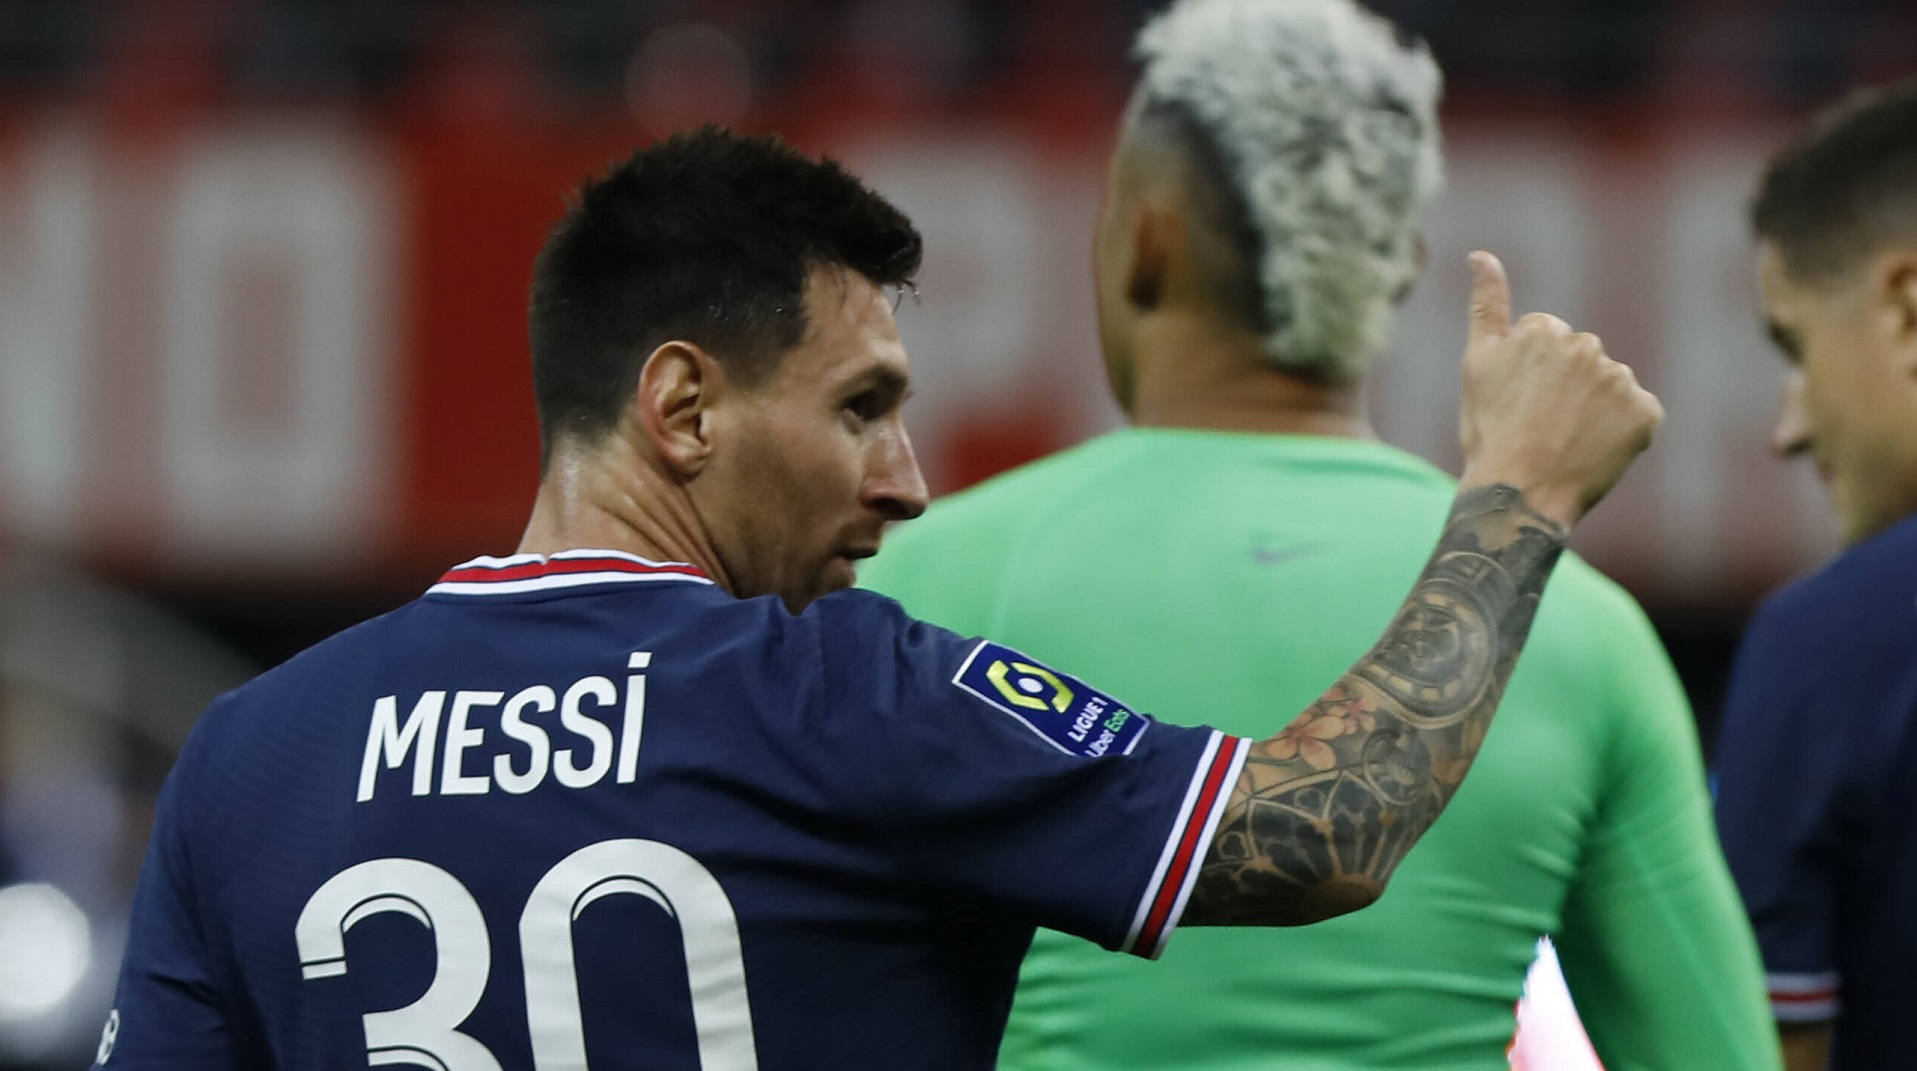 Messi's PSG debut Streamed by Ibai: Overview and Viewership Stats   Streams Charts